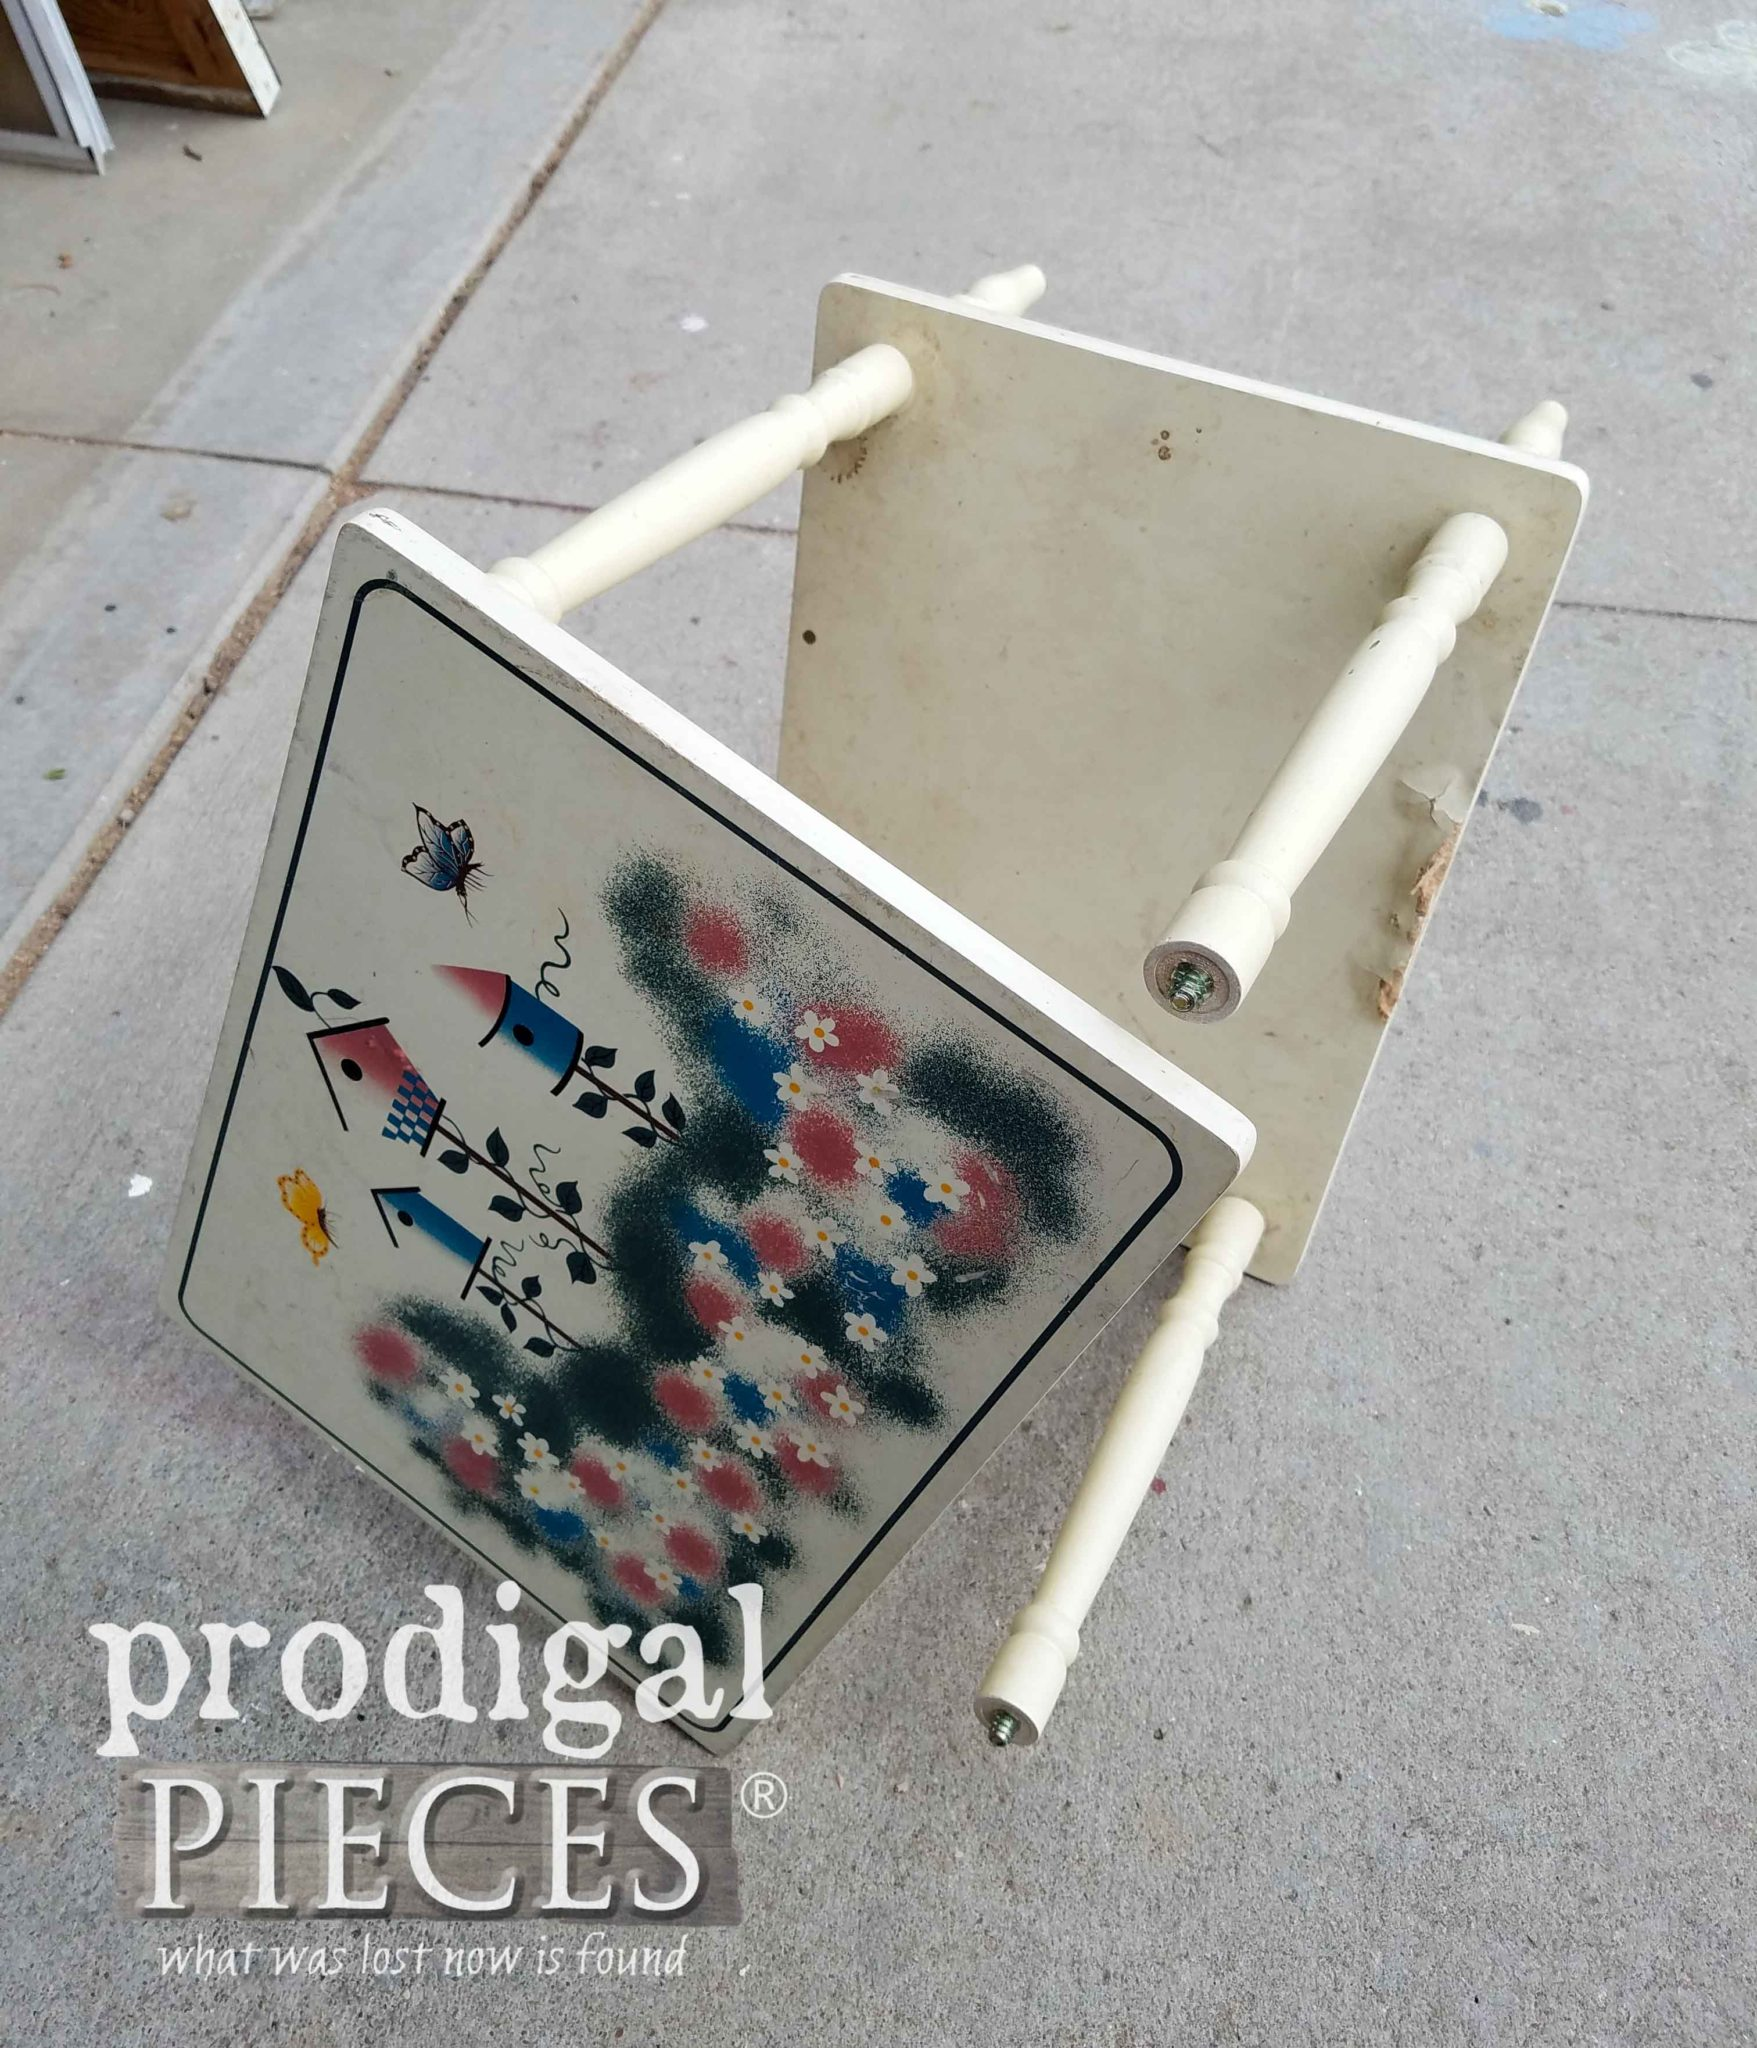 Curbside Table Before | Falling Apart | Prodigal Pieces | prodigalpieces.com